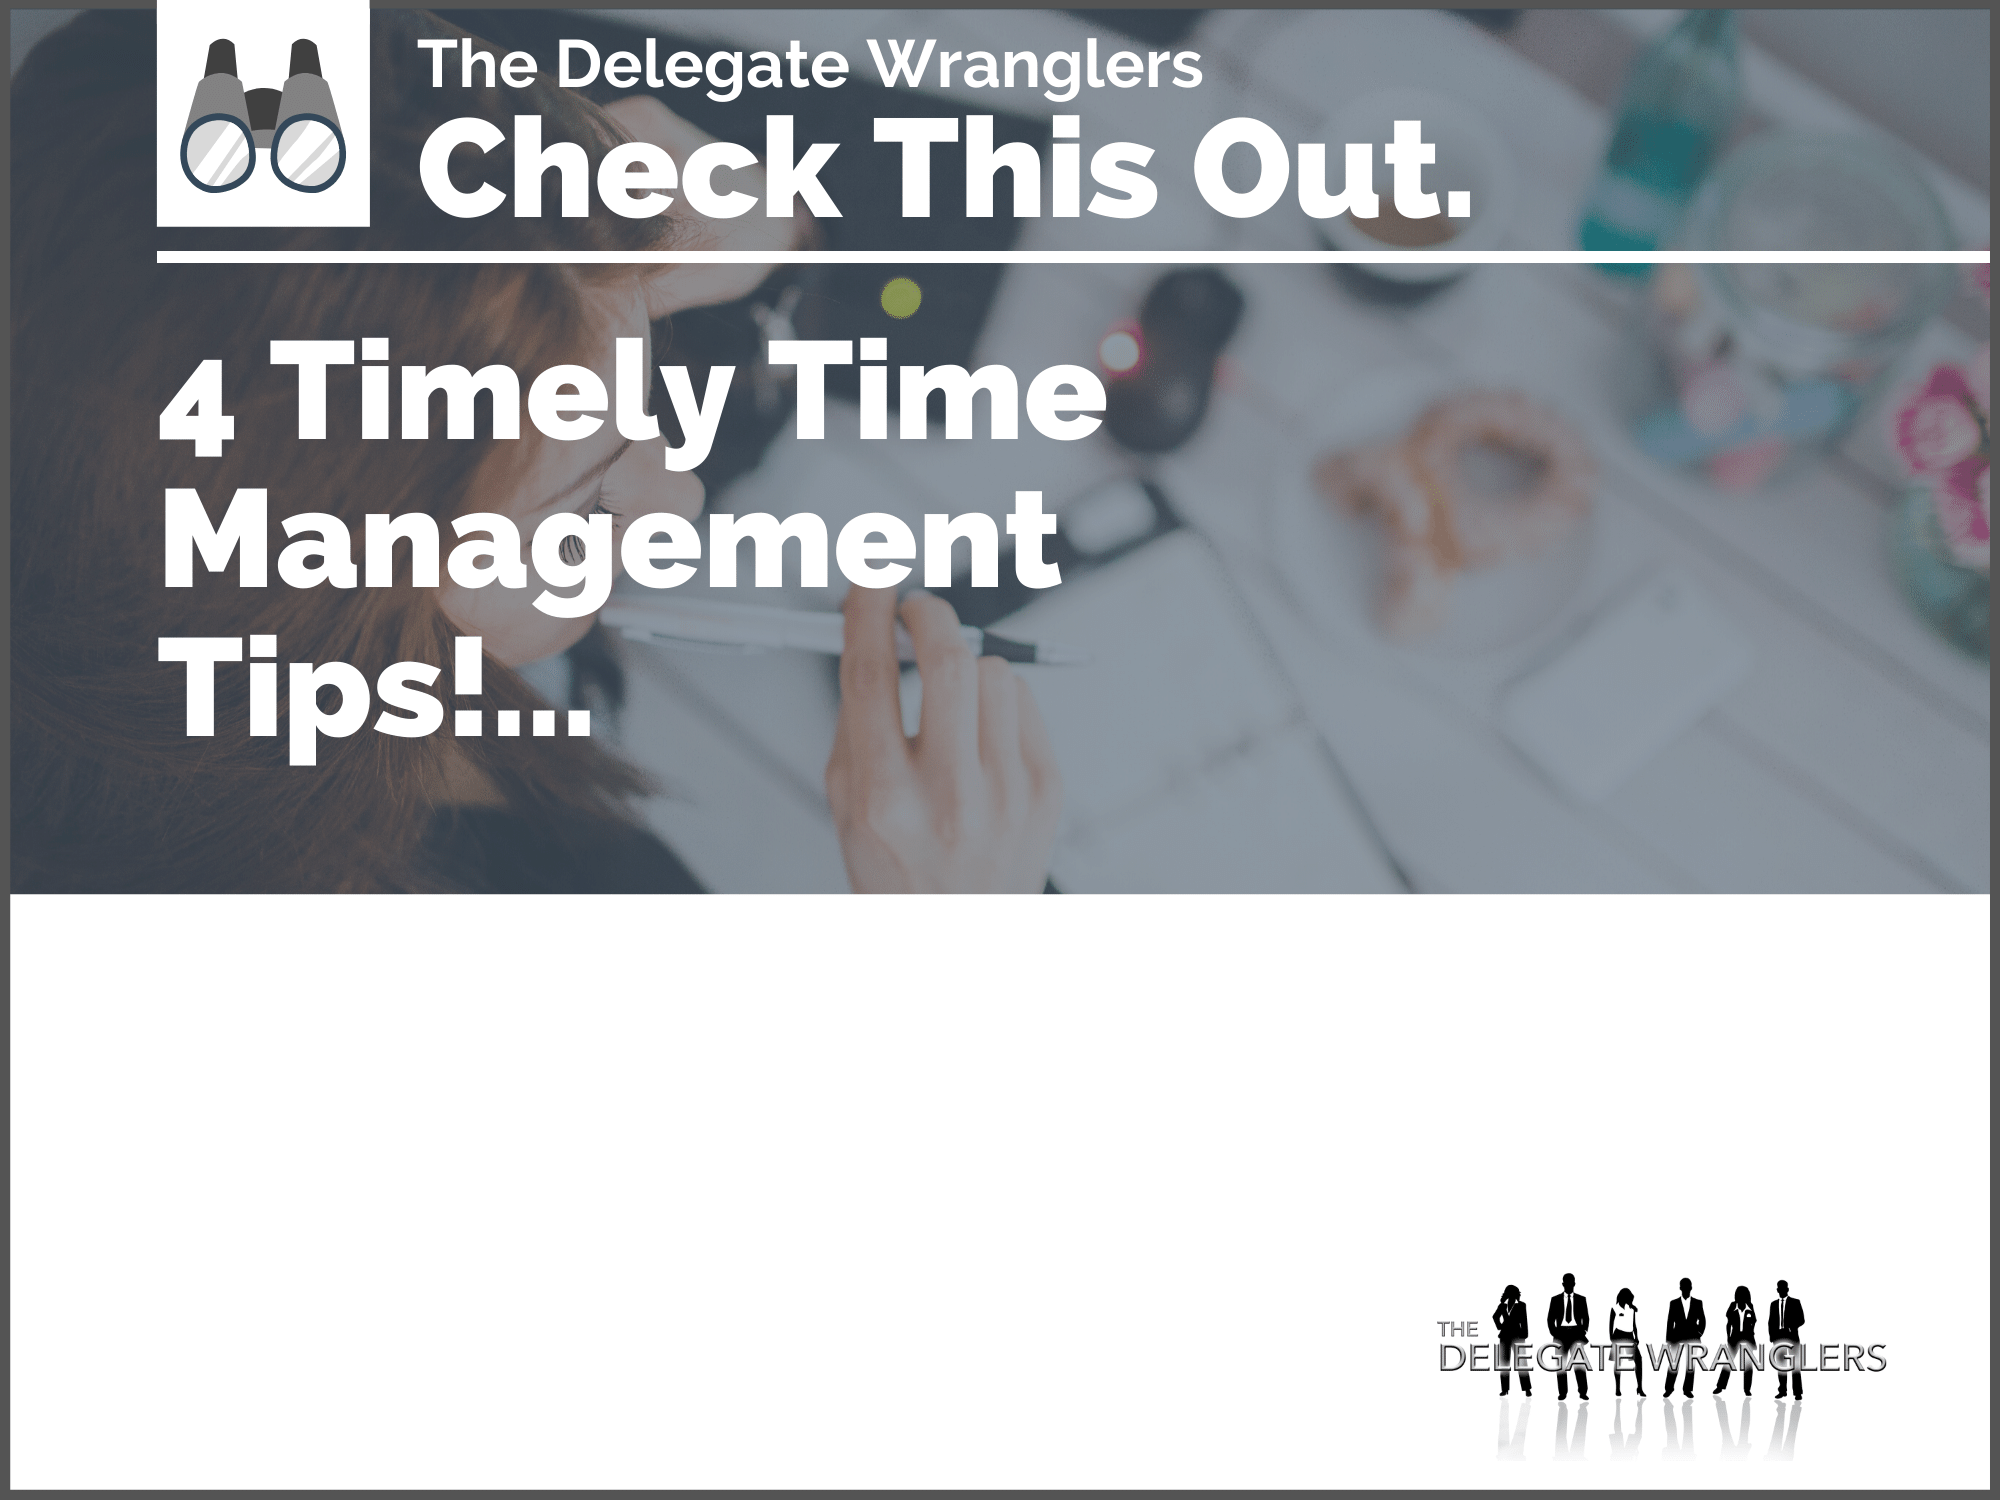 4 Timely Time Management Tips!